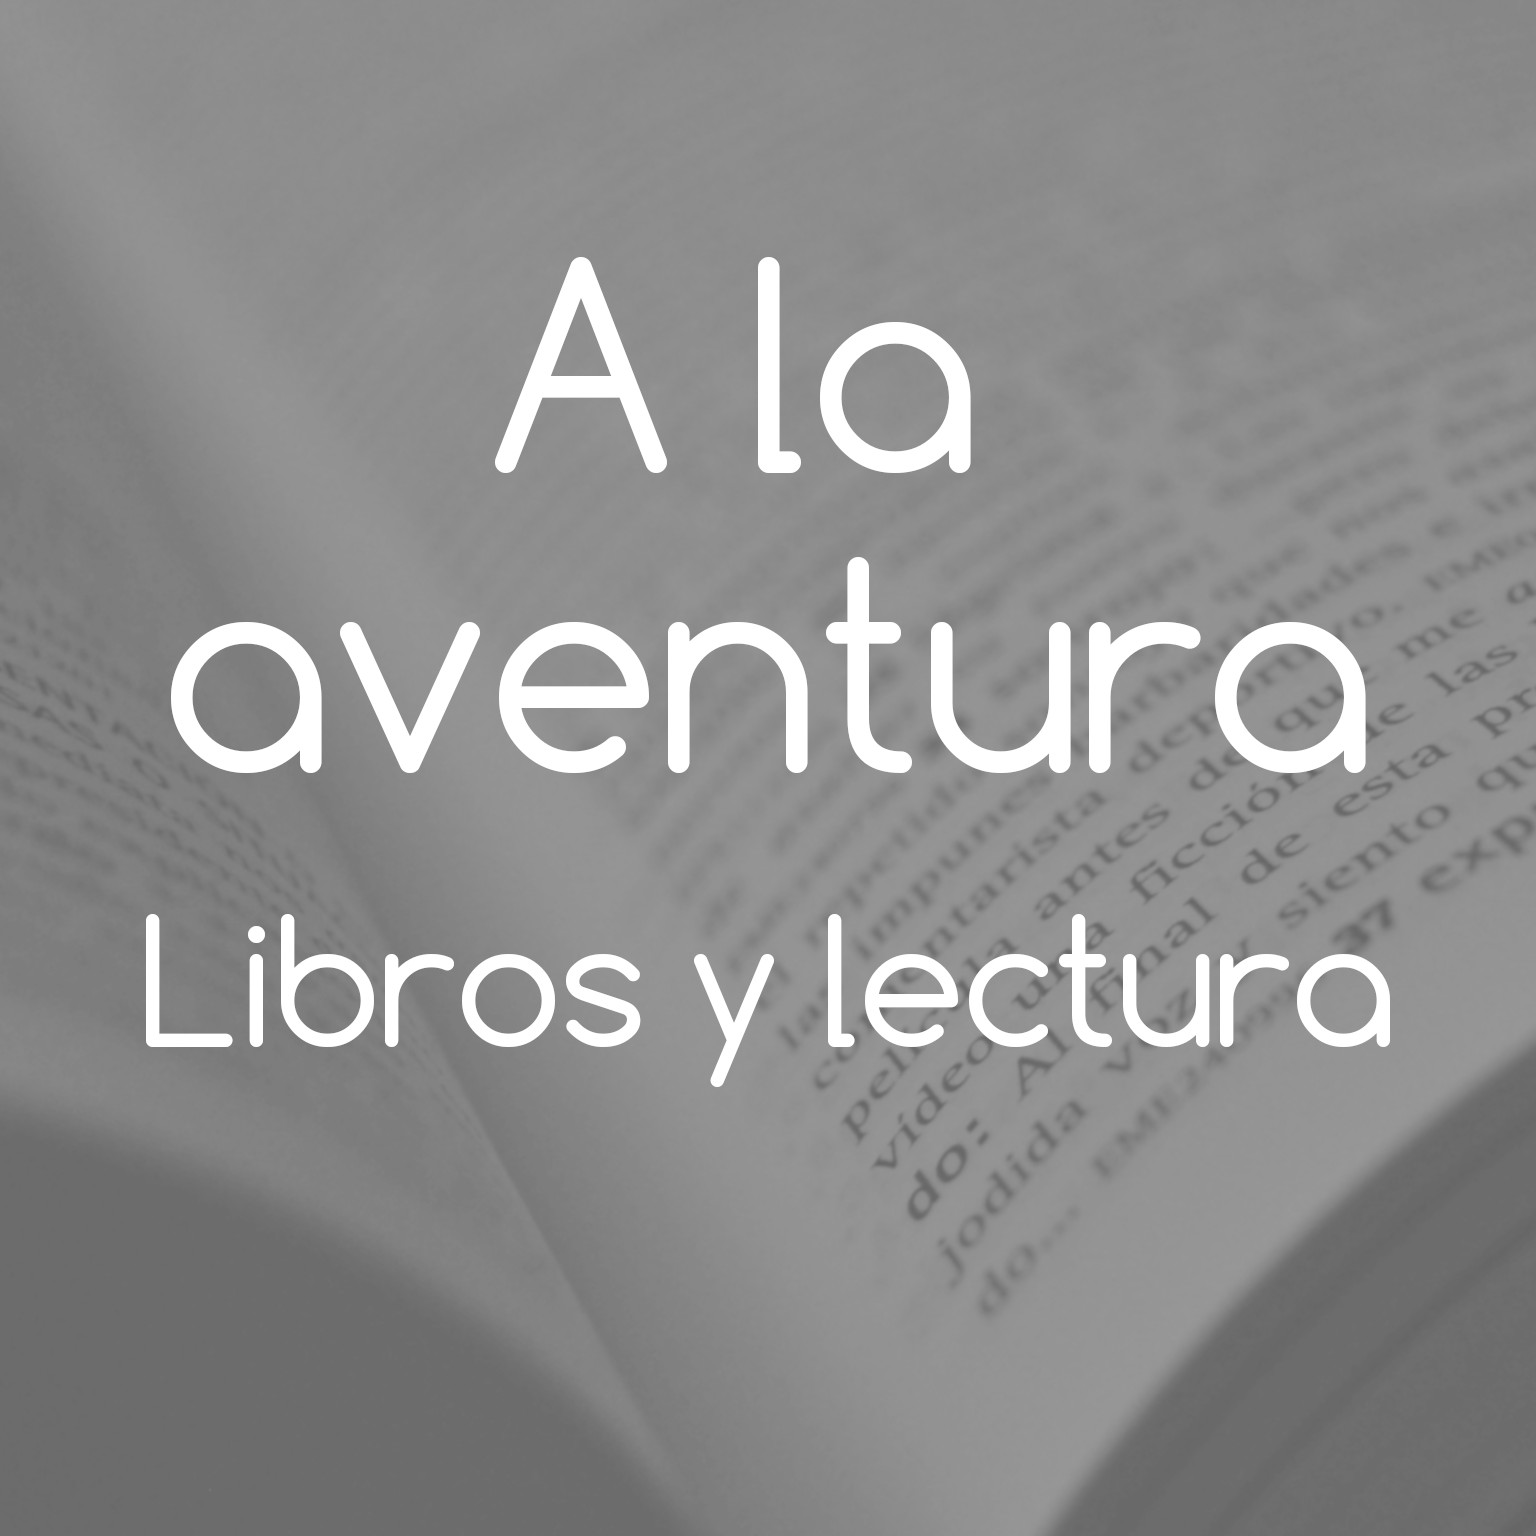 Libros Grey Subscribe On Android To A La Aventura Libros Y Lectura